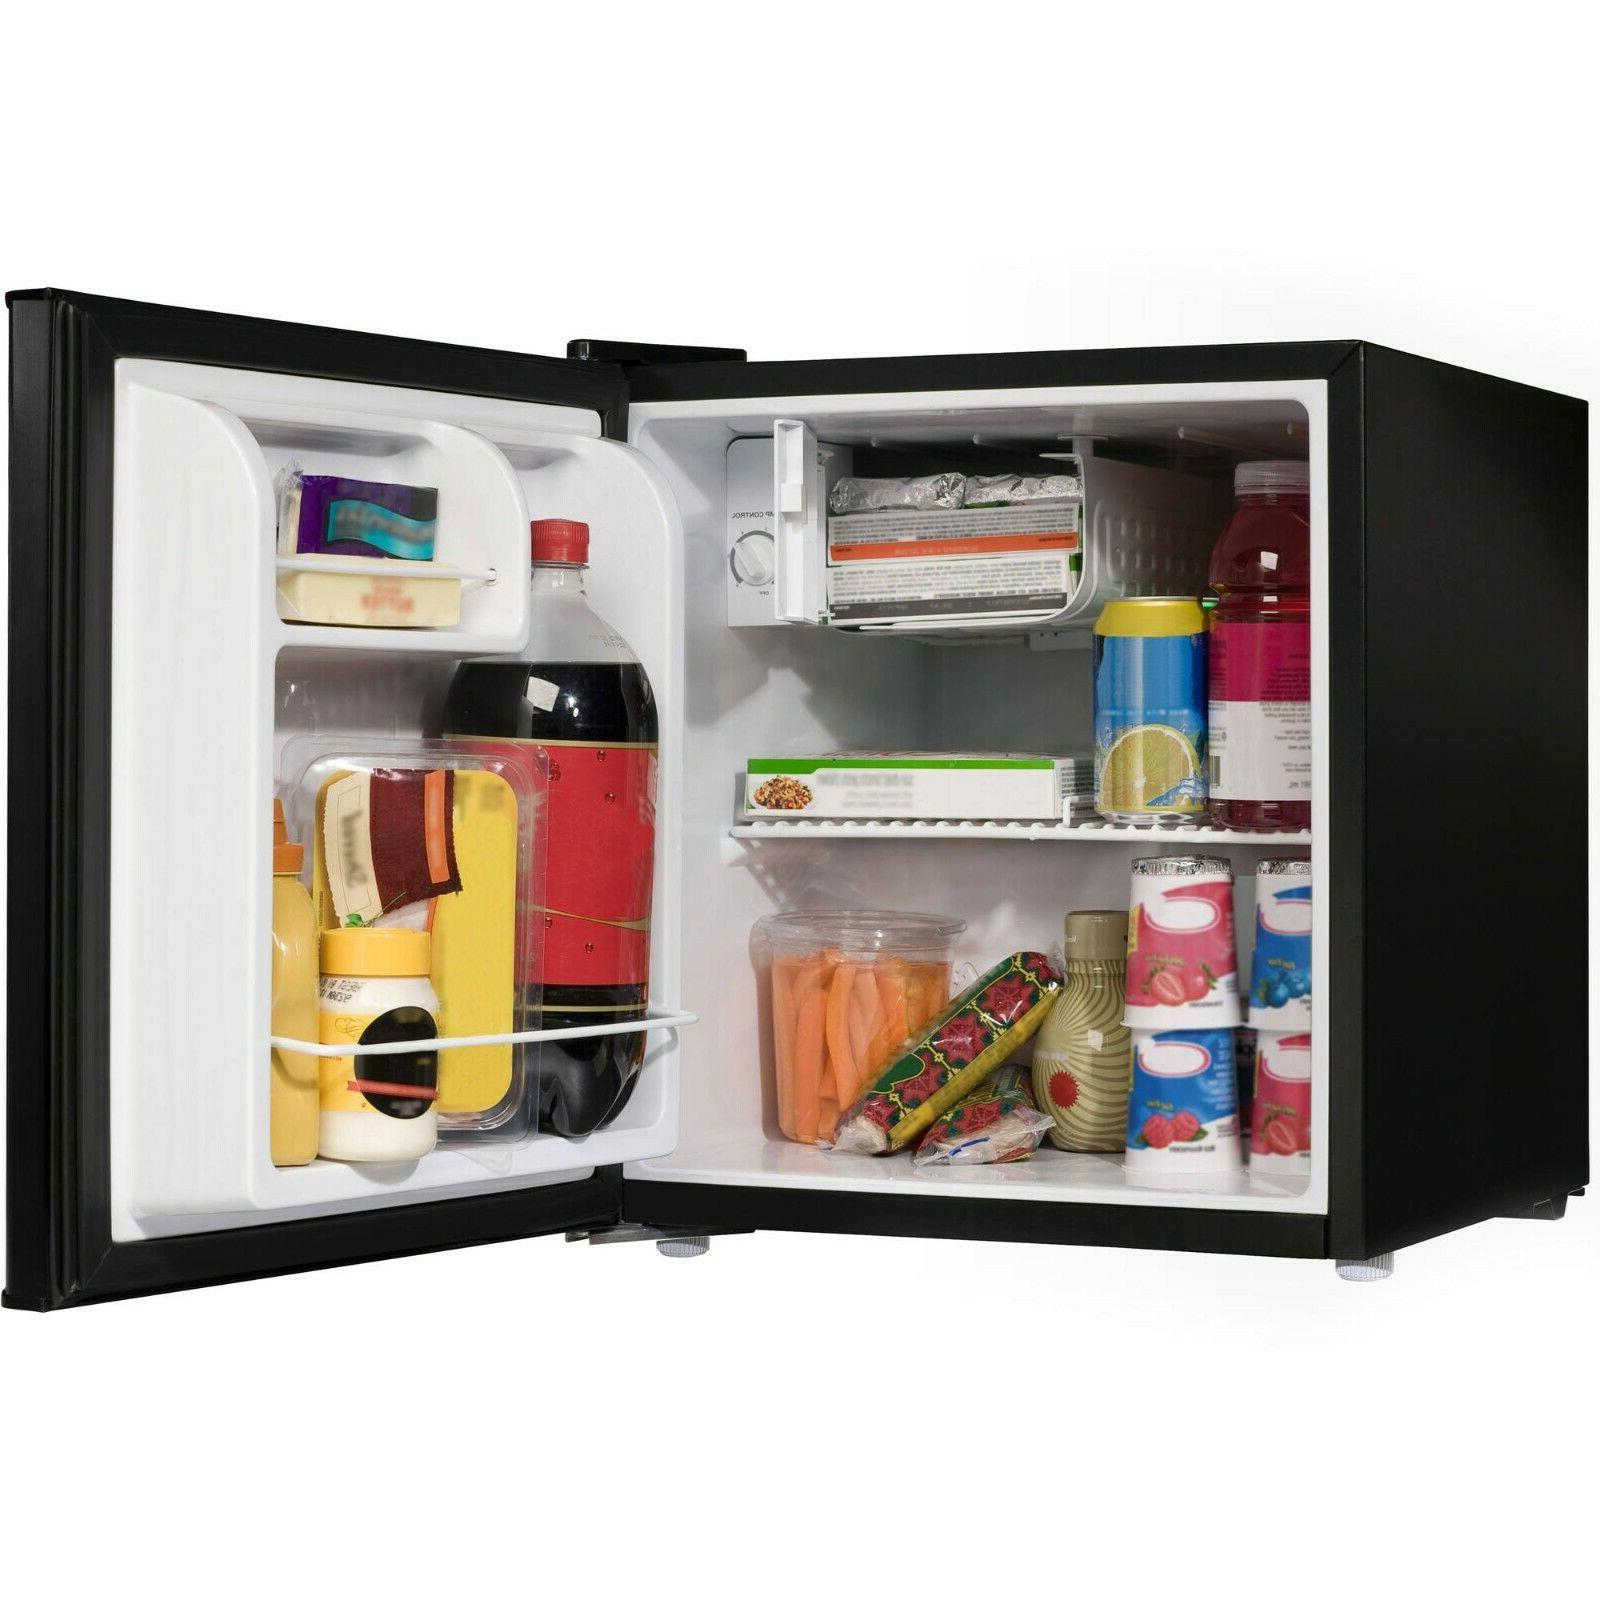 Small Mini Refrigerator For Office 1.7 Cu Ft With Compact Dorm